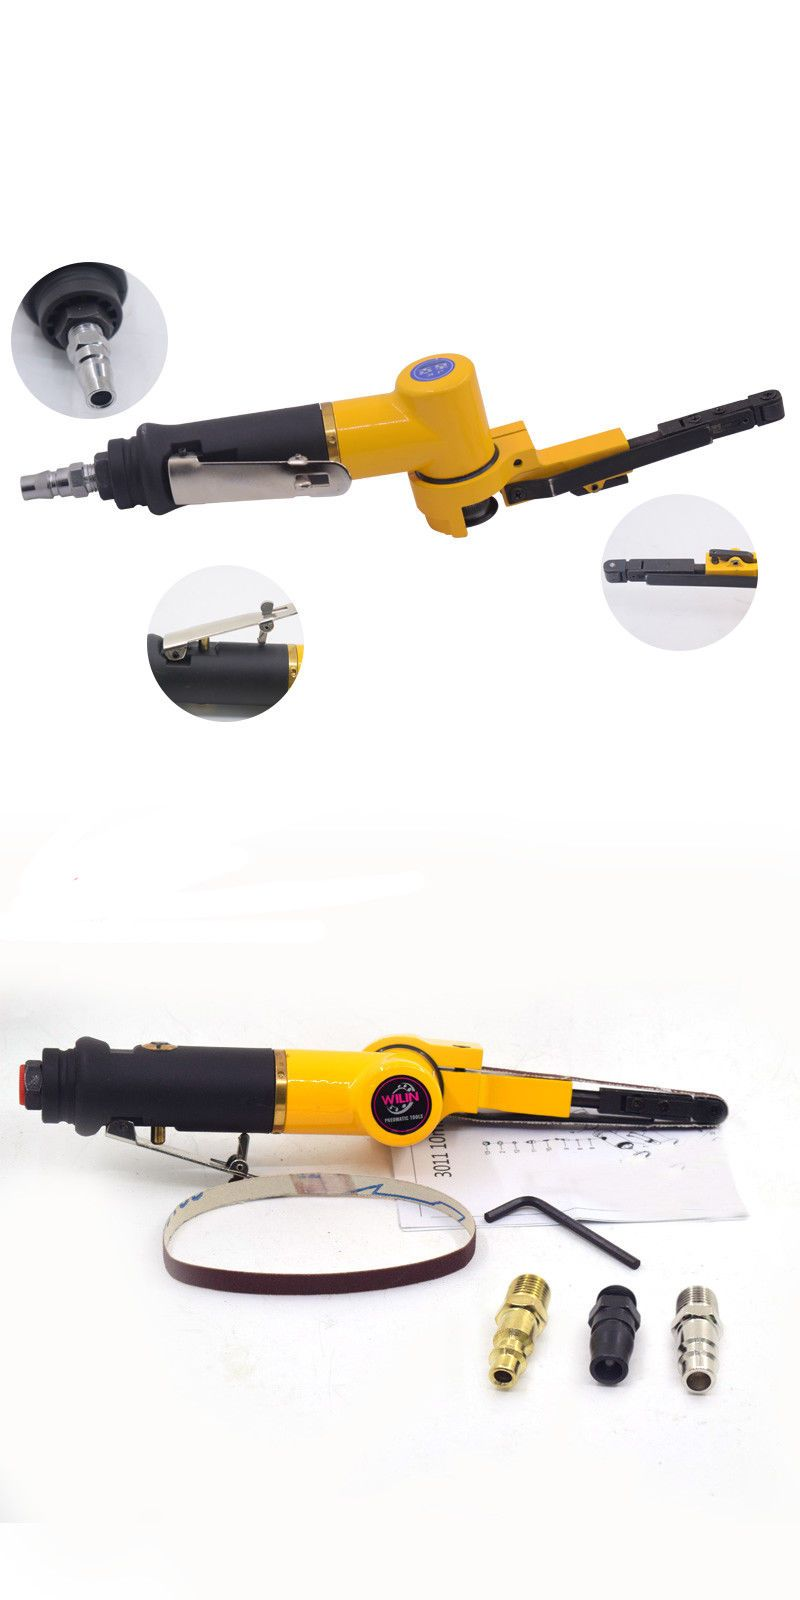 Sanders 42249 Pneumatic Tools Air Belt Sanders Polisher Machine 10mm Metal Polishing 3 8 Inch Buy It Now Only 39 On Ebay Metal Polish Belt Sander Metal